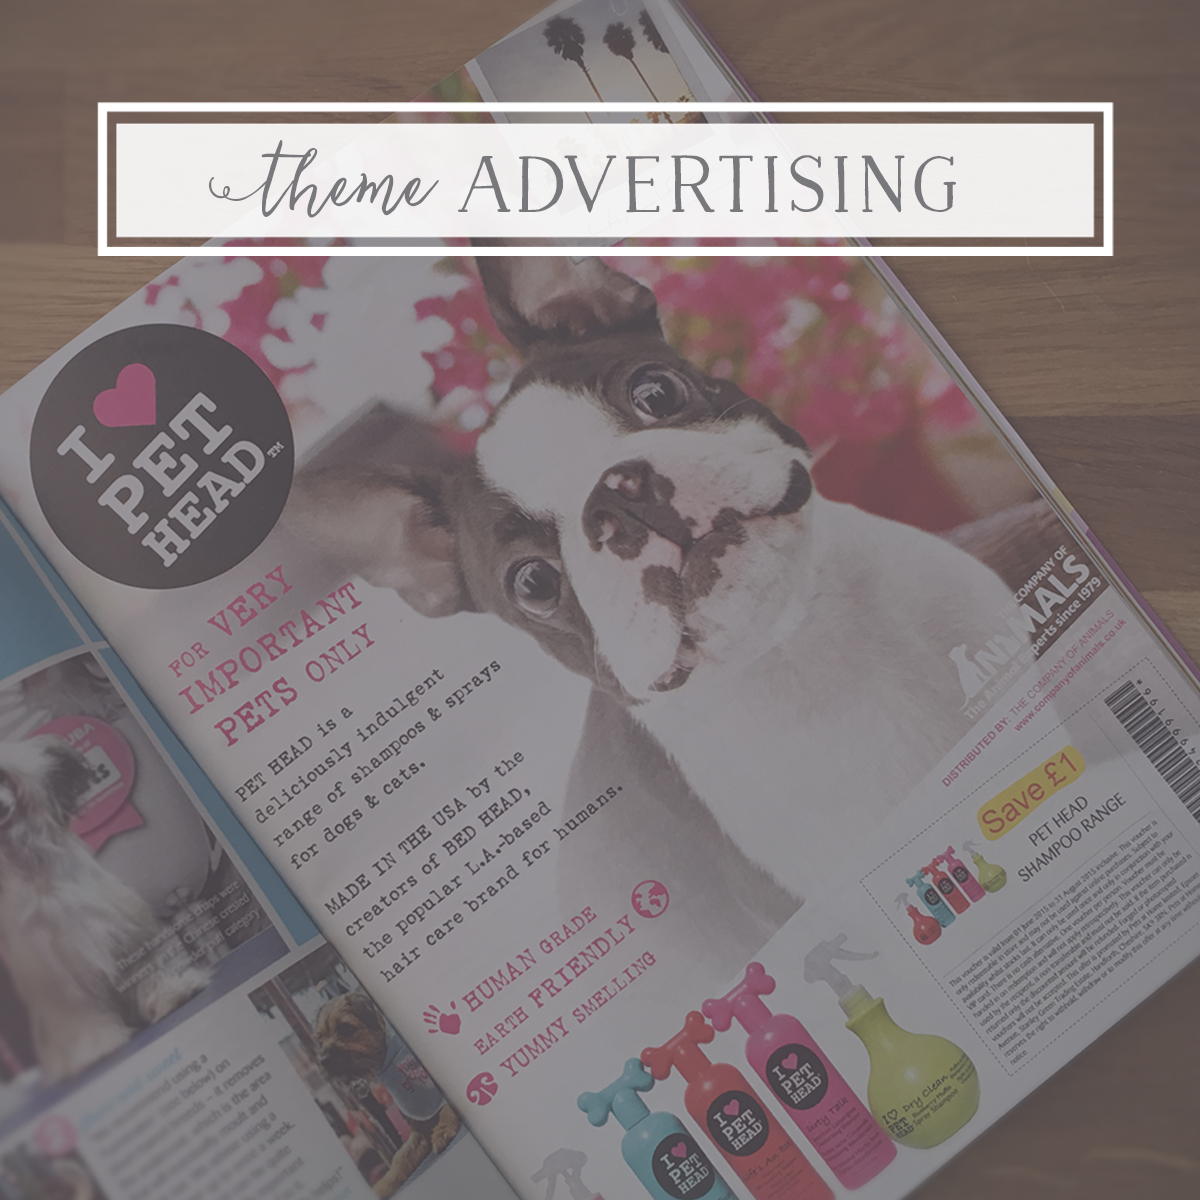 The Secrets to Advertising your pet business